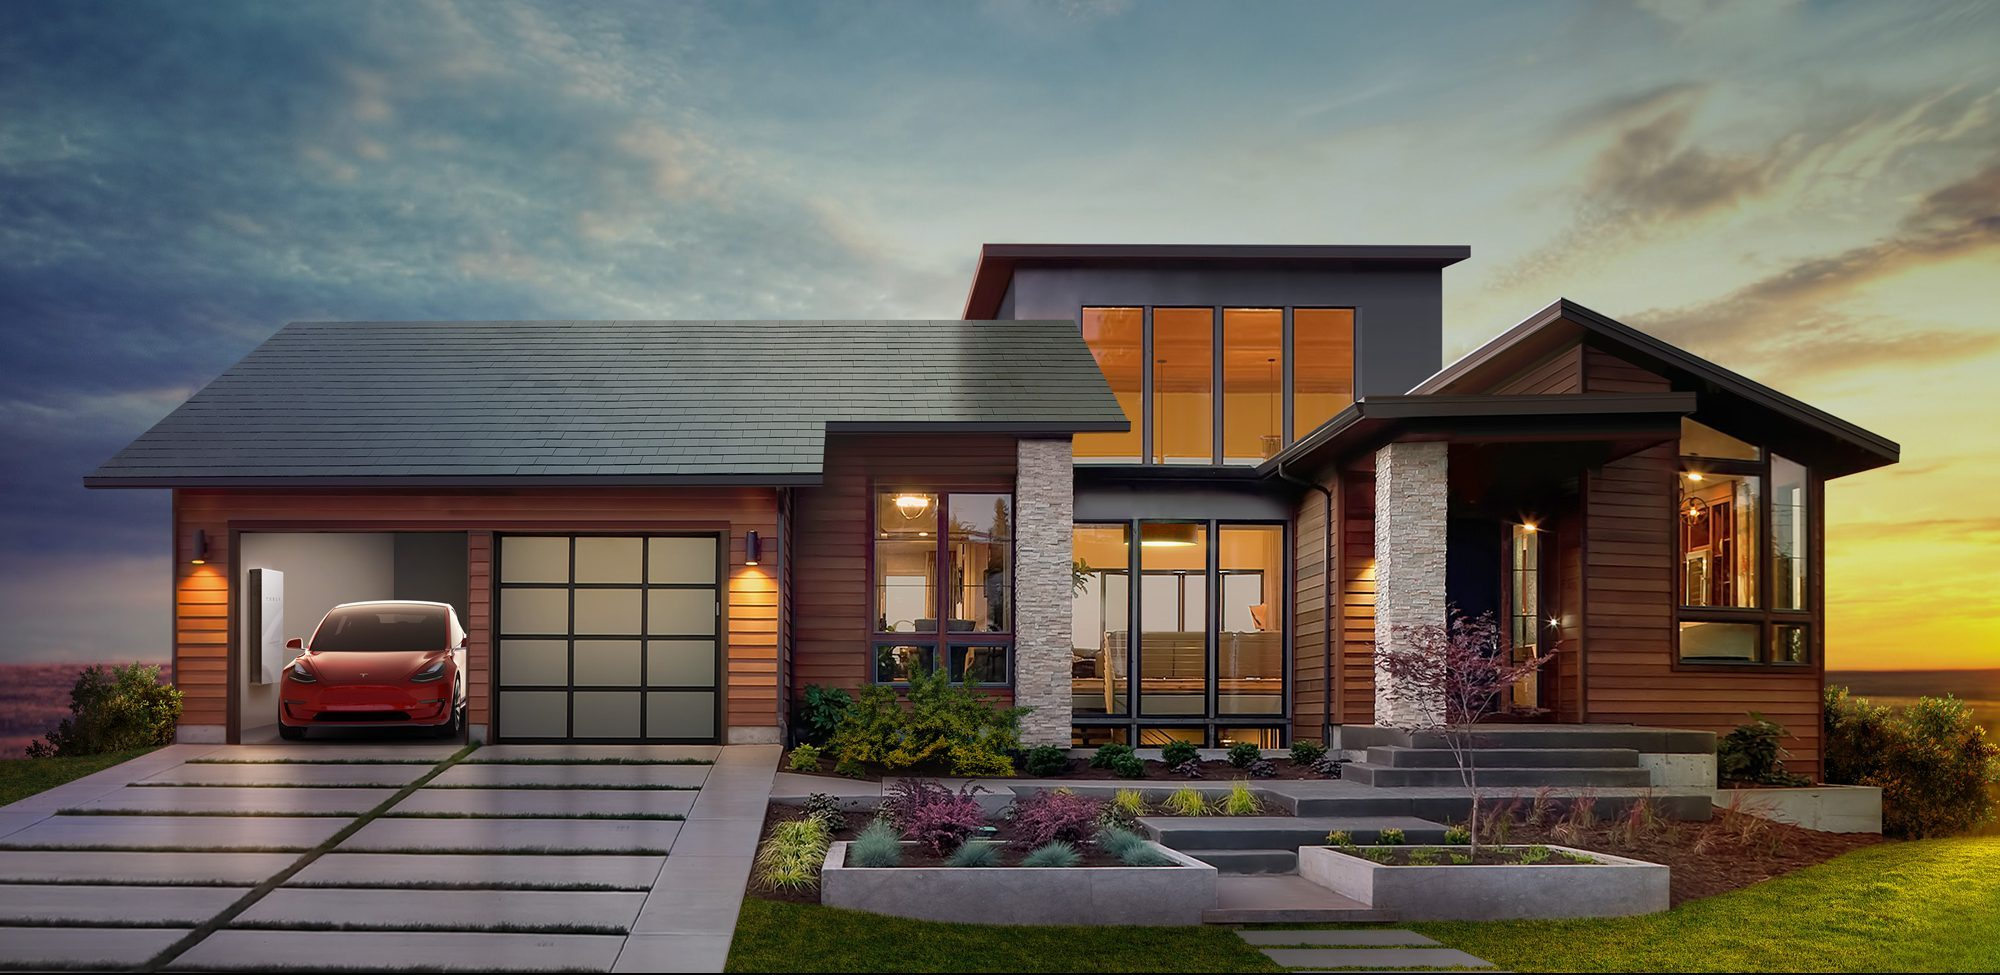 Tesla Rooftop solar, integrated, BIPV, roof